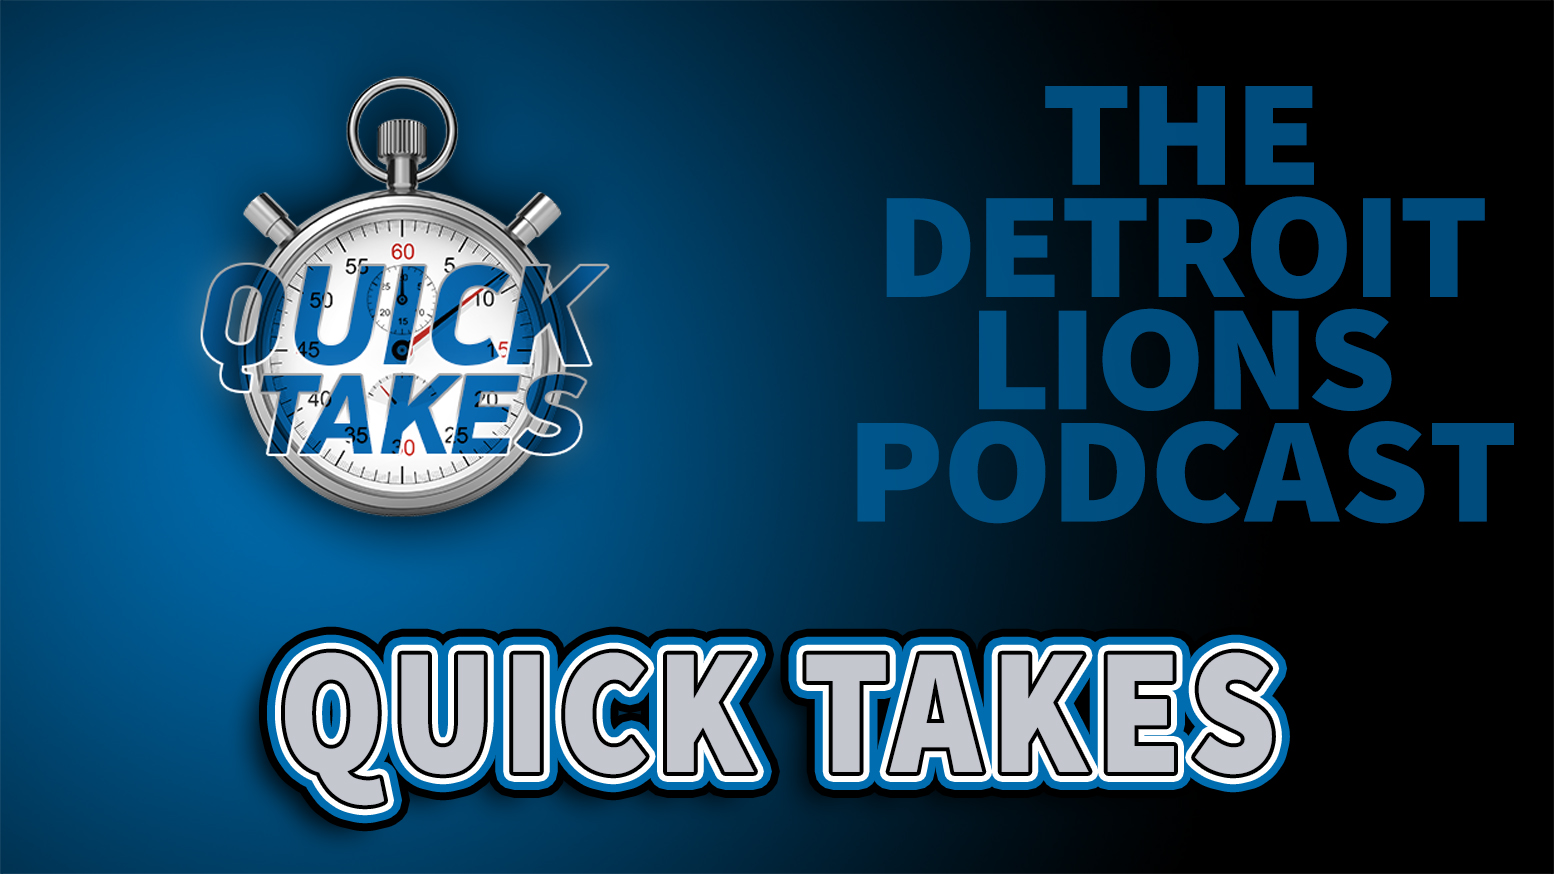 Detroit Lions Podcast Quick Takes